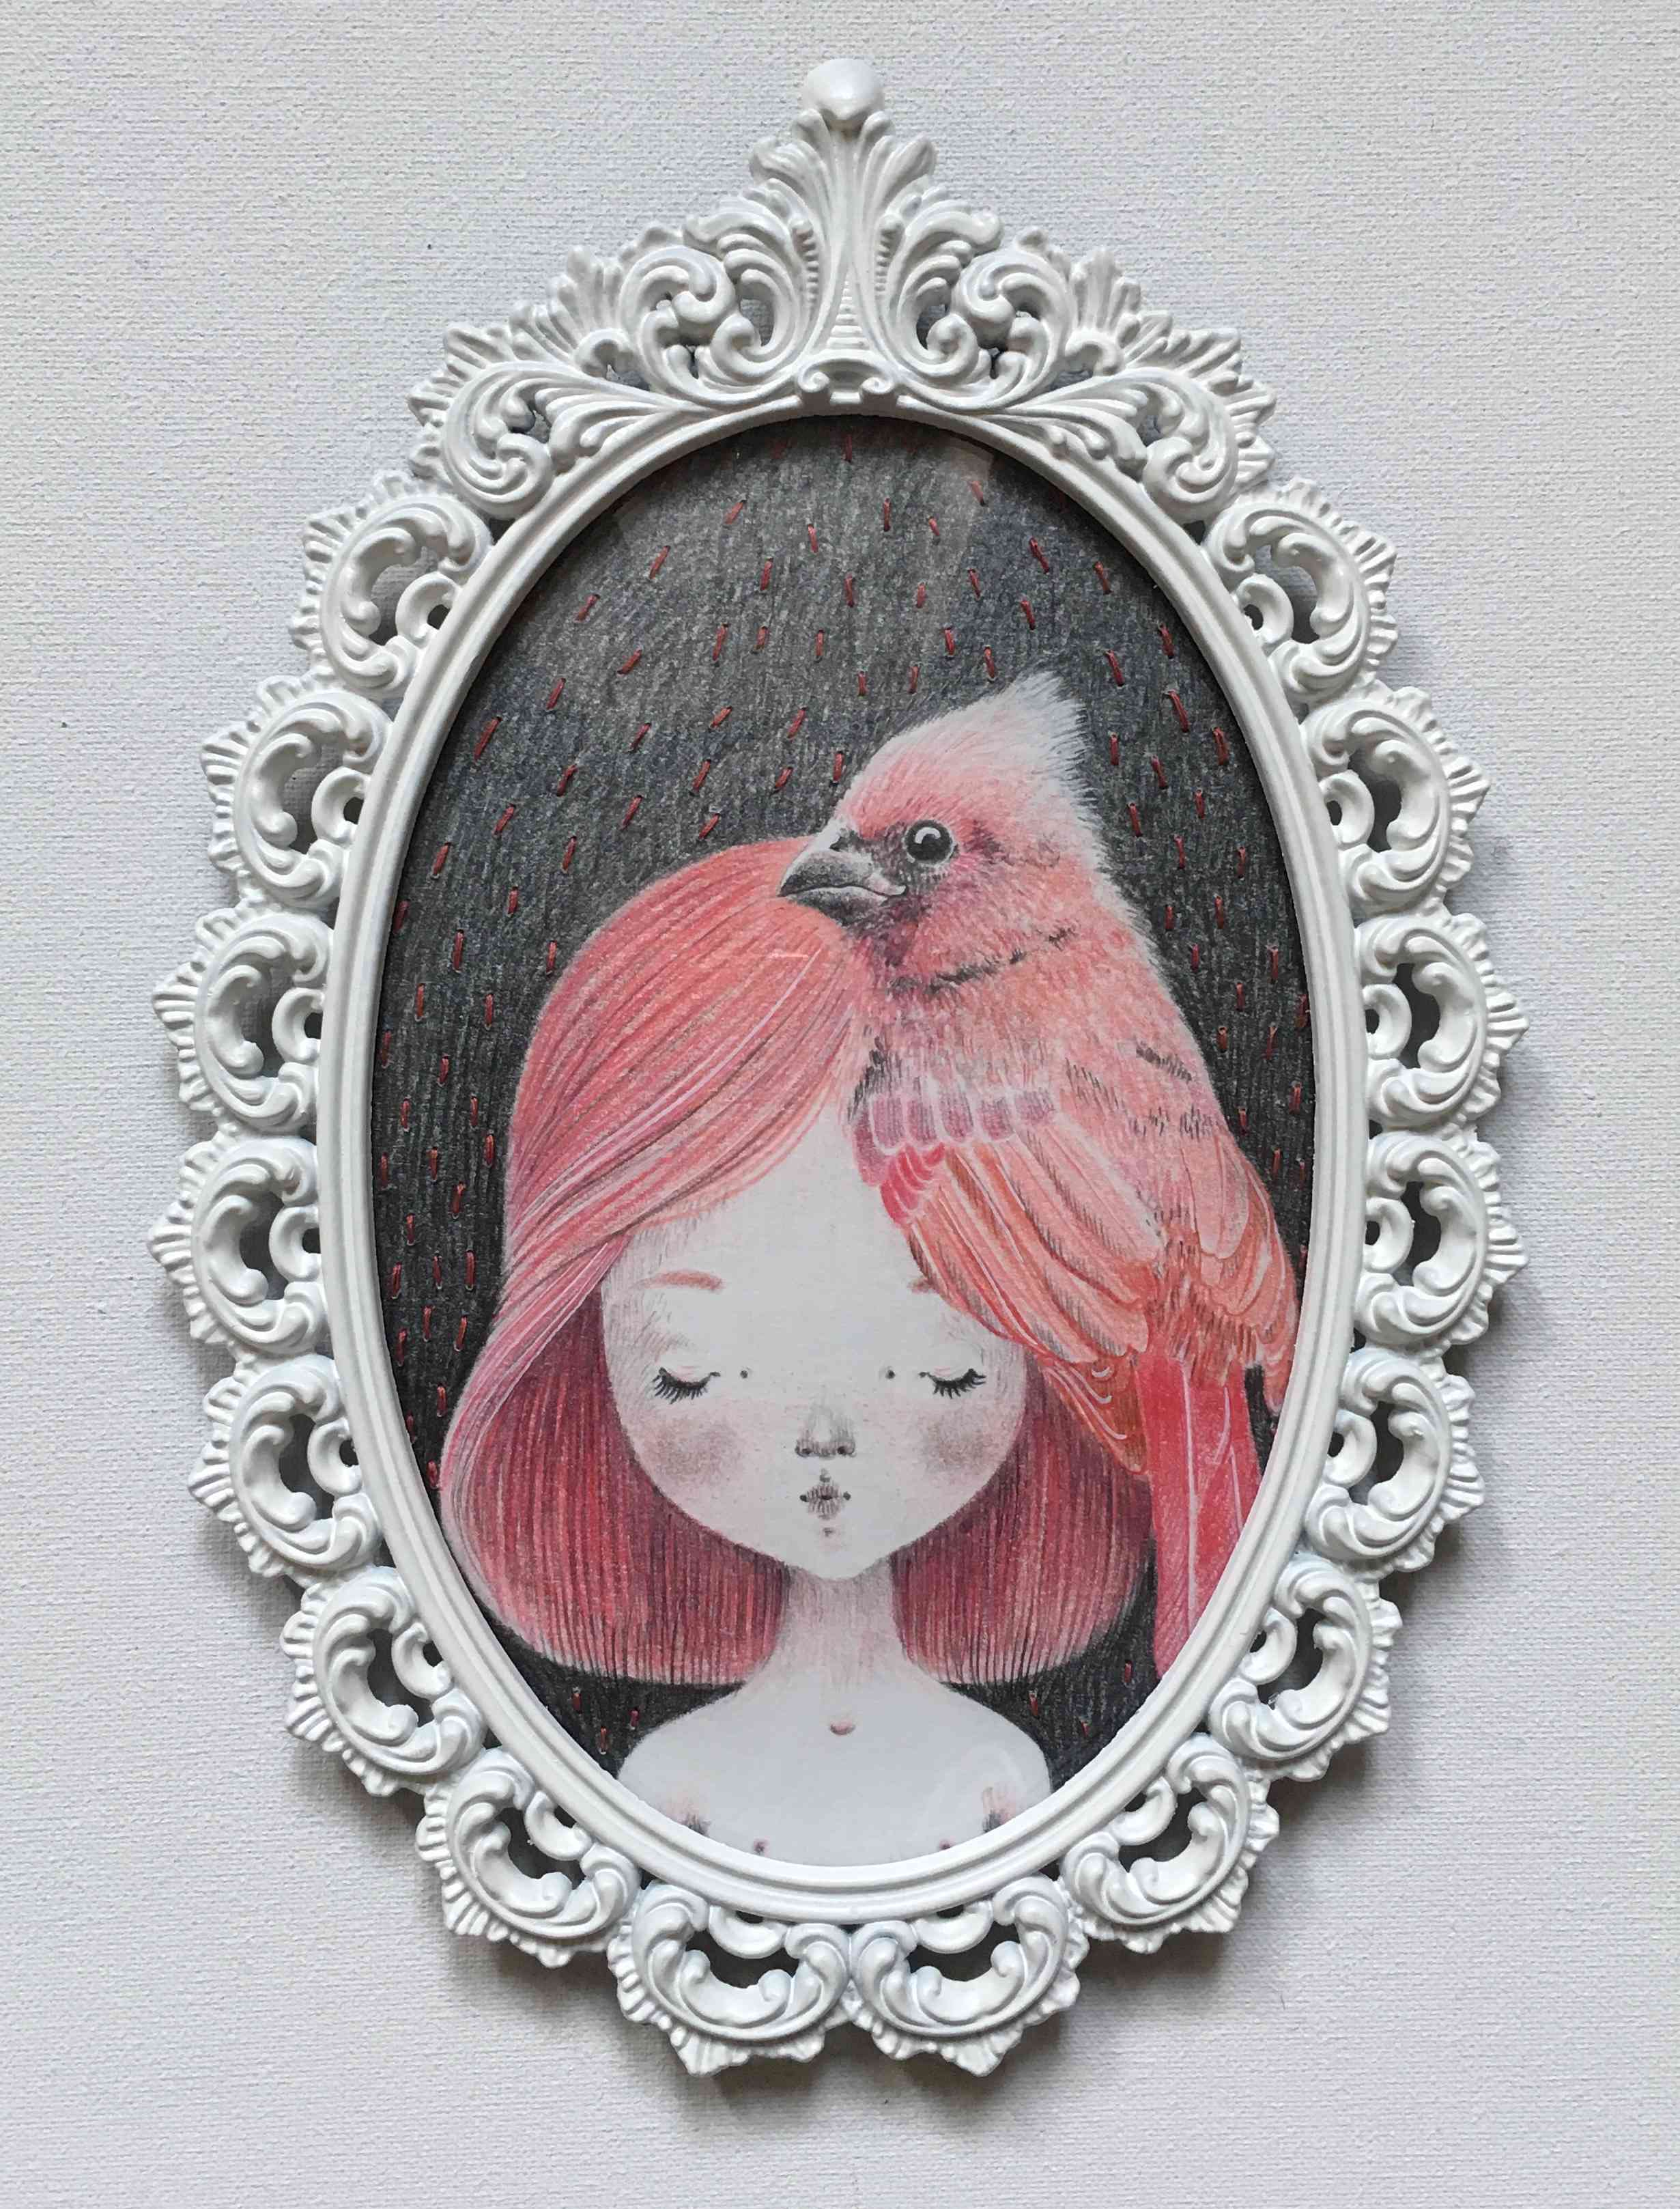 seforapons-graphite-embroidering-coloredpencil-pink-bird-girl-symbiosis-momoirochan